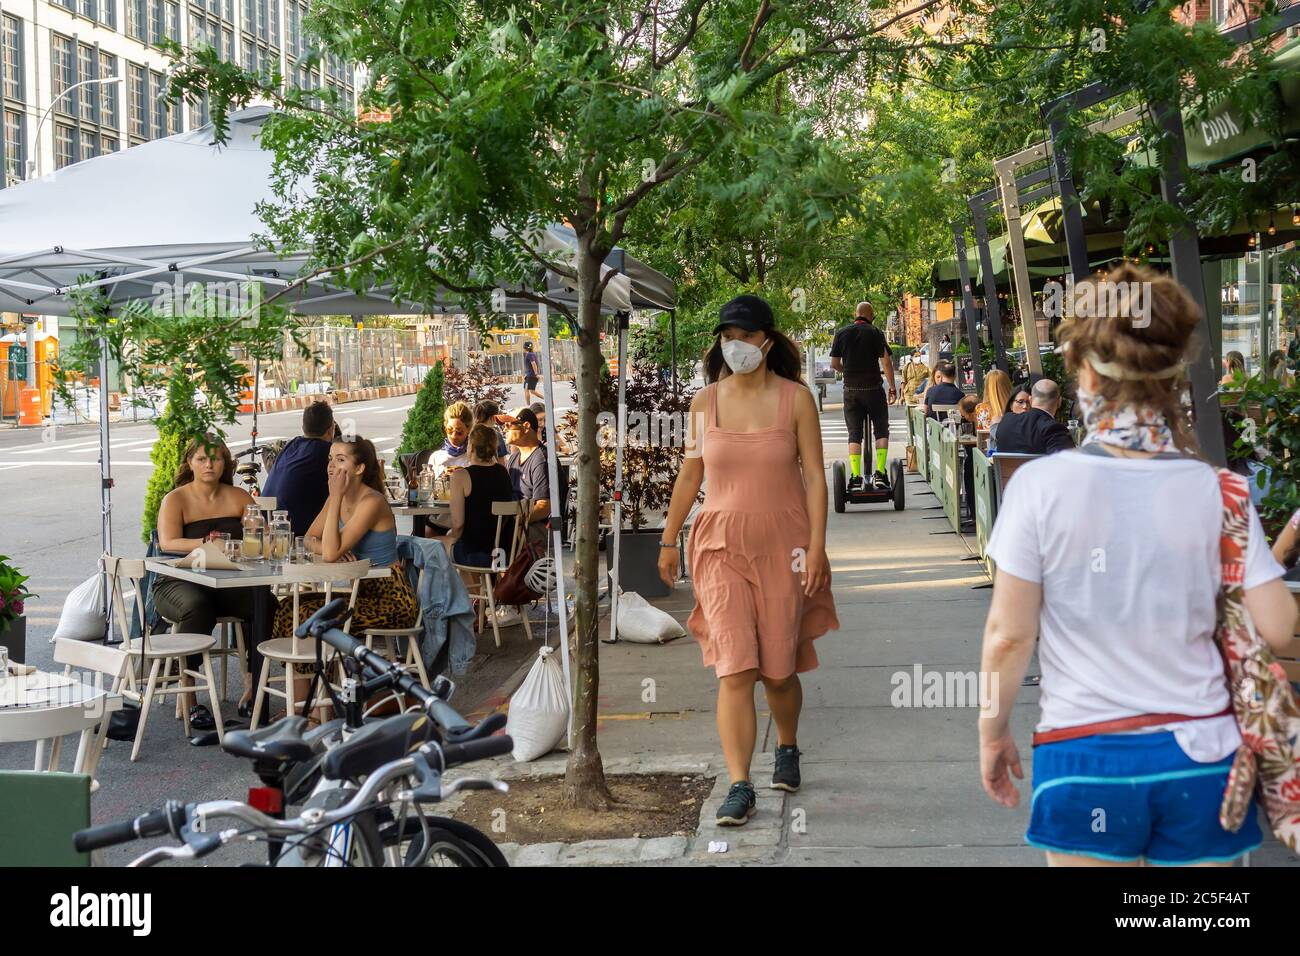 Outdoor dining at a restaurant in the Chelsea neighborhood in New York on Wednesday, July 1, 2020. While al fresco dining is now allowed indoor dining in New York City has been postponed due to coronavirus non-compliance concerns. (© Richard B. Levine) Stock Photo